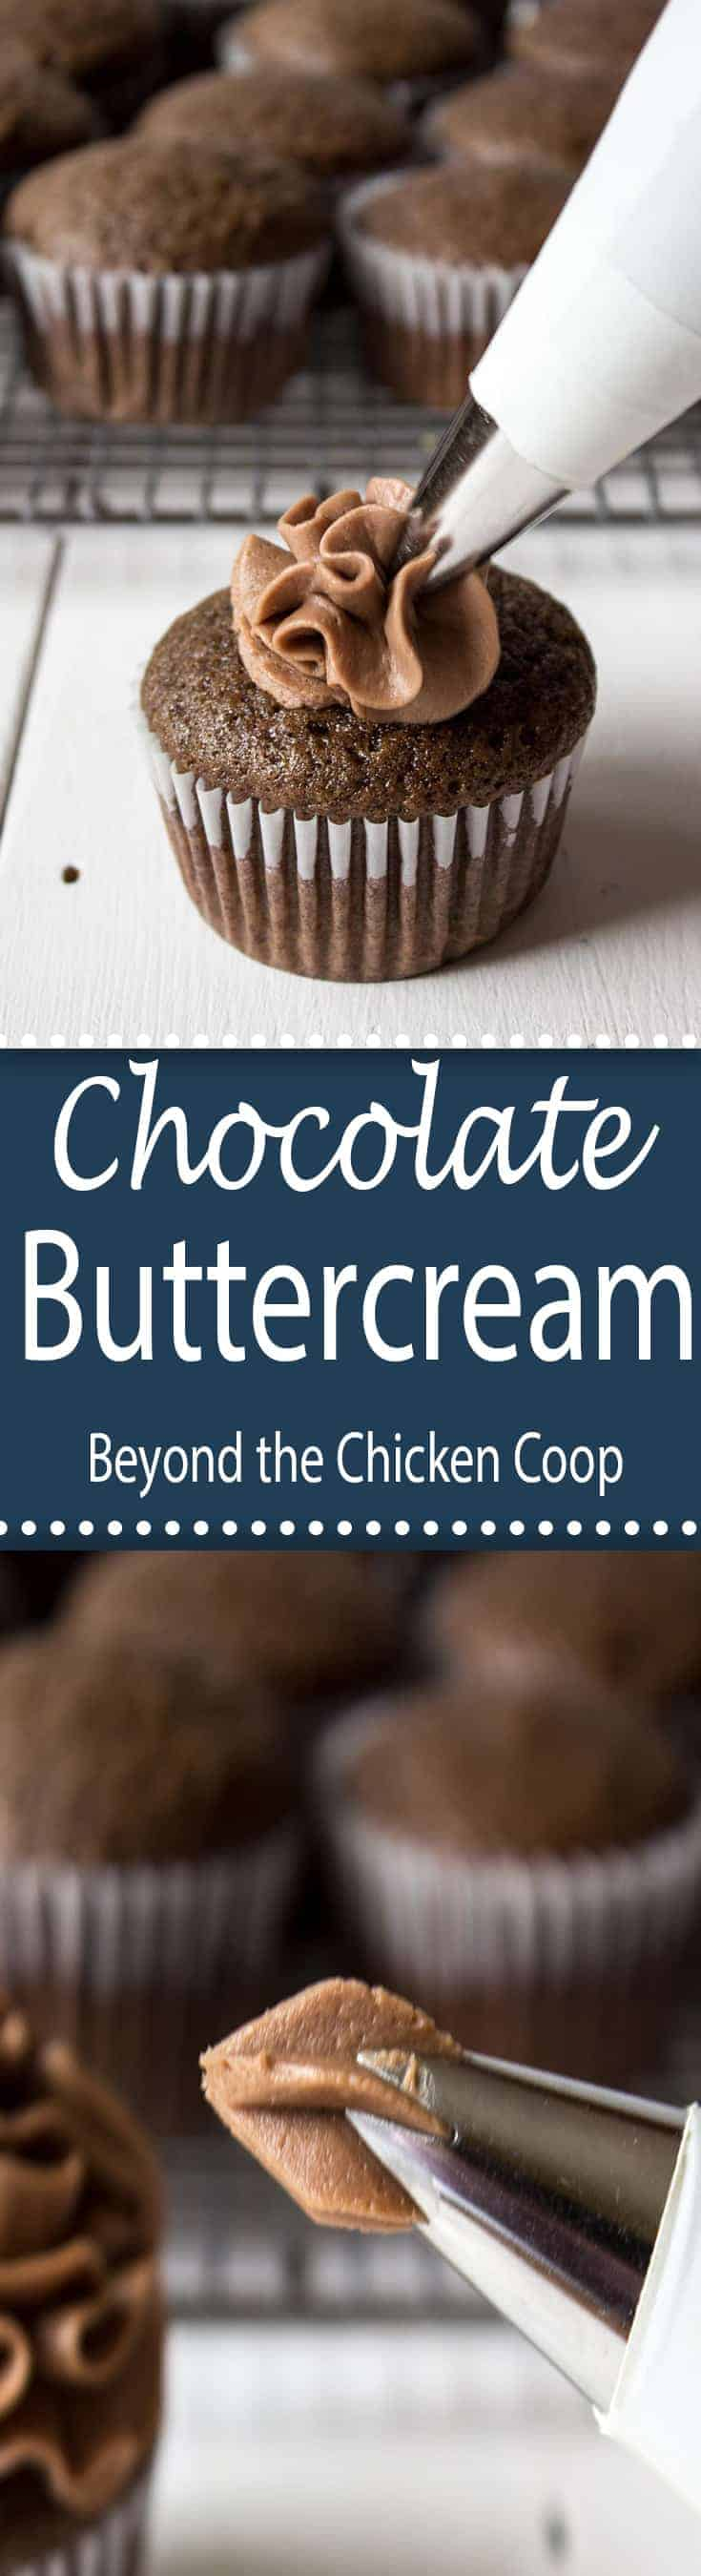 Chocolate Buttercream Frosting is a perfect frosting for any cupcake or cake!